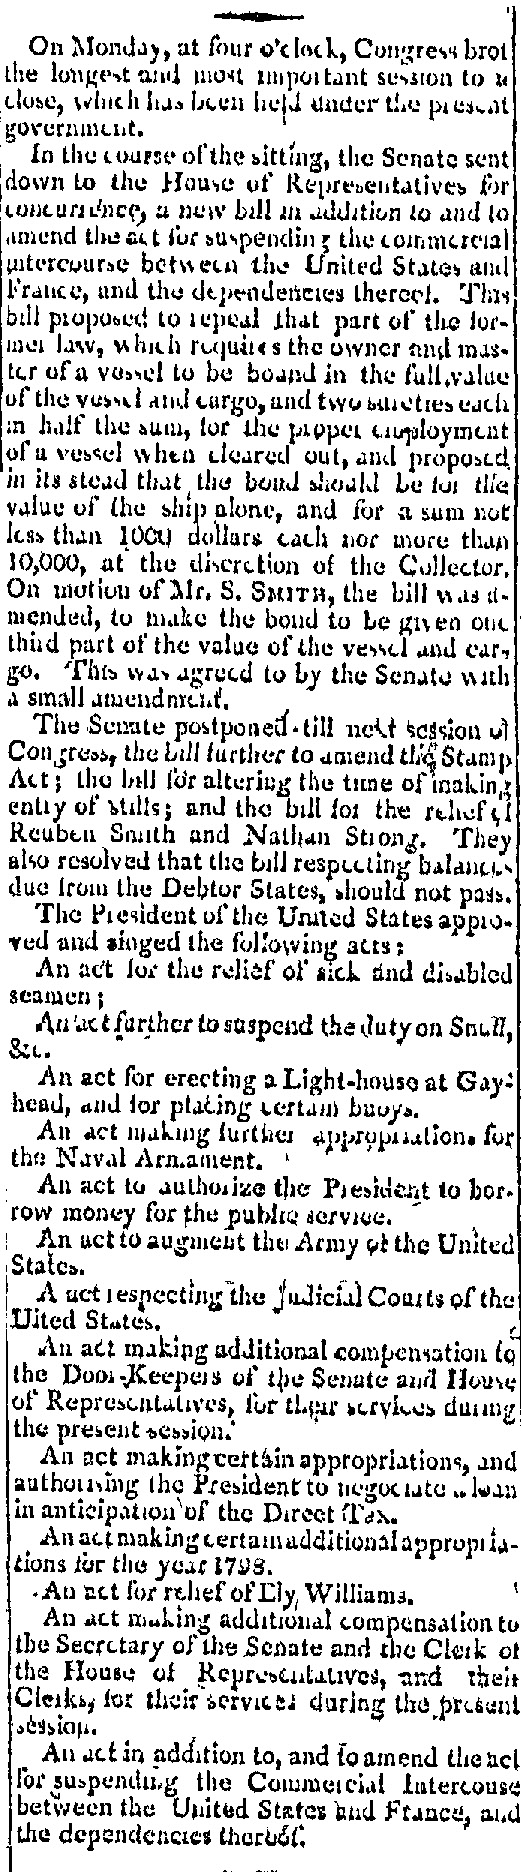 Congressional vote approving lighthouse, 1798